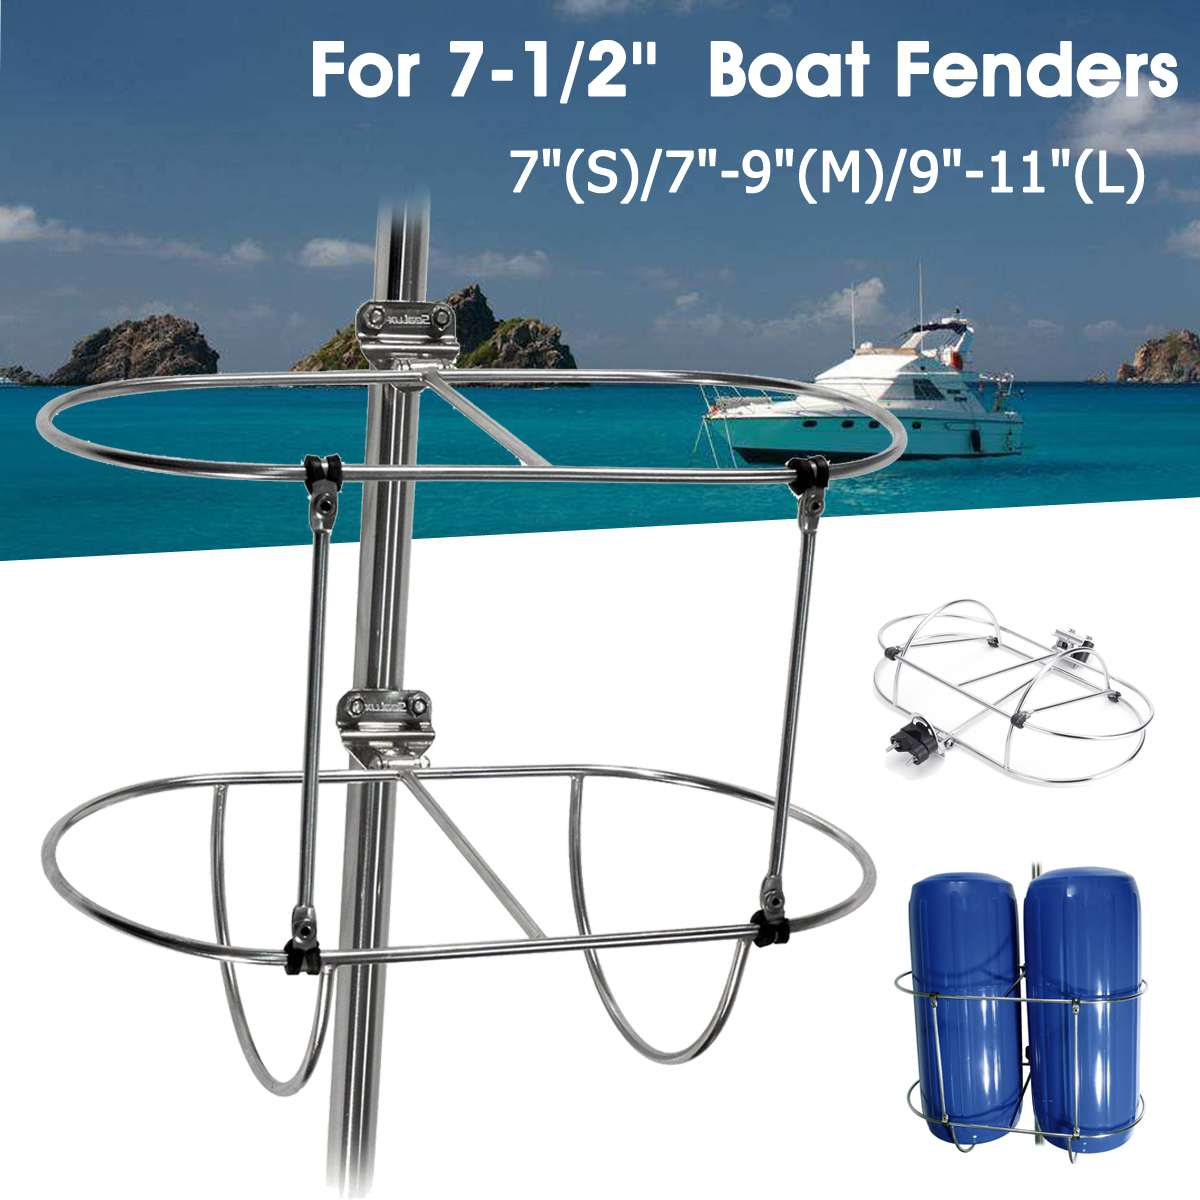 "Audew Stainless Steel 7""(S)/7""-9""(M)/9""-11""(L) Folding Double Fender Holder Rack Vehicle Boat Parts For 7-1/2'' Boat Fenders"